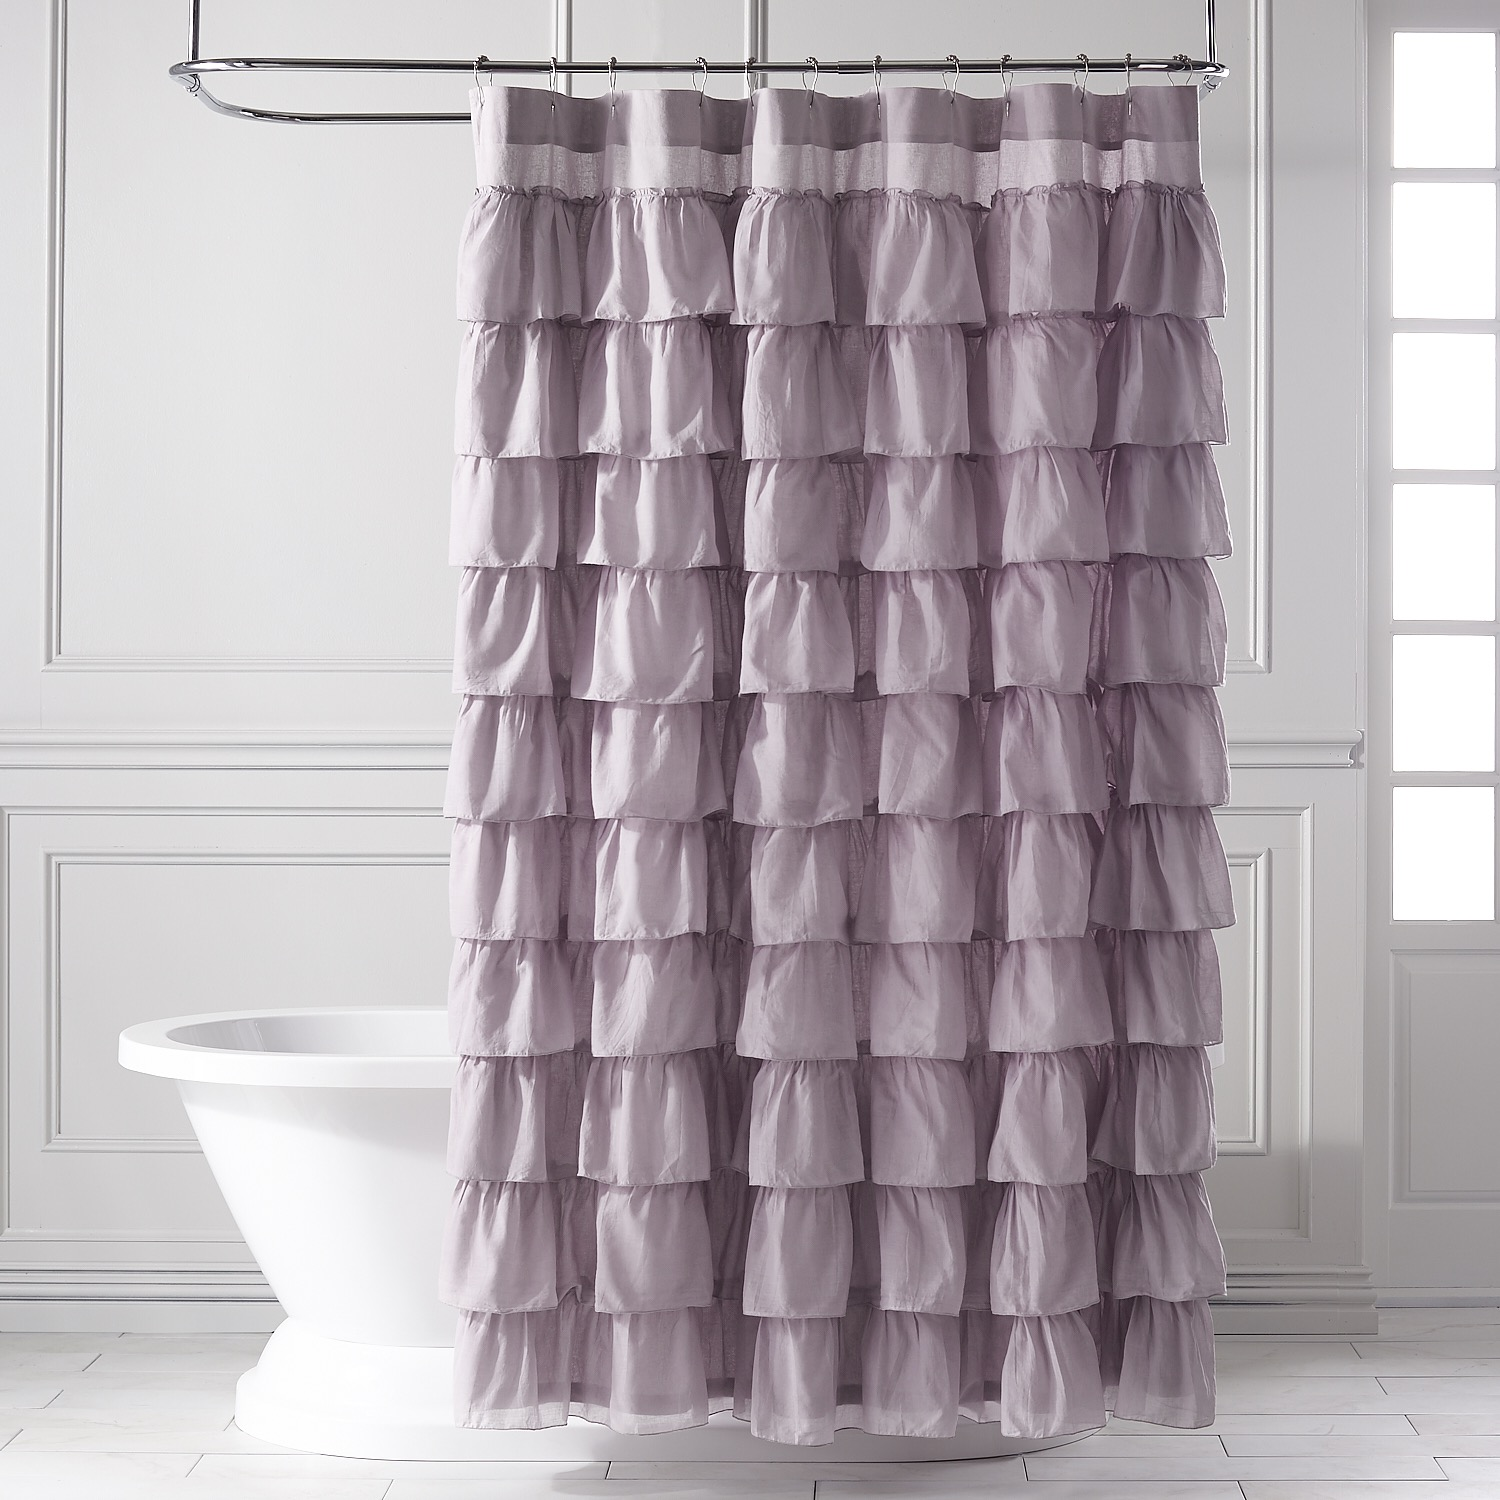 Ruffled Lilac Shower Curtain